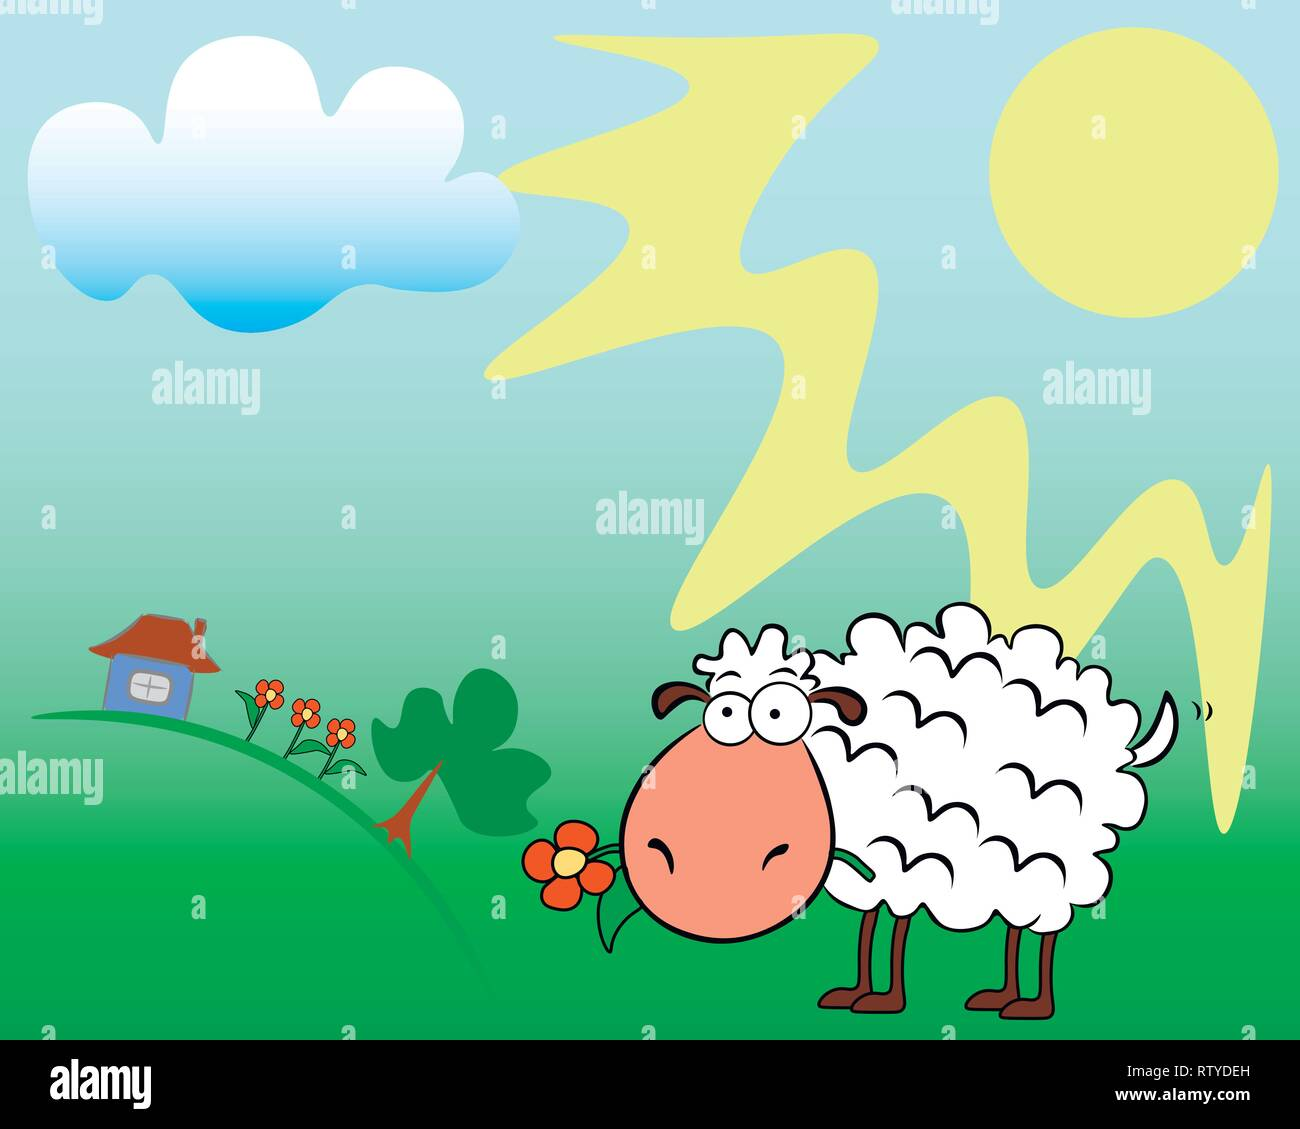 On a summer sunny field, a sheep chews a flower. - Stock Vector